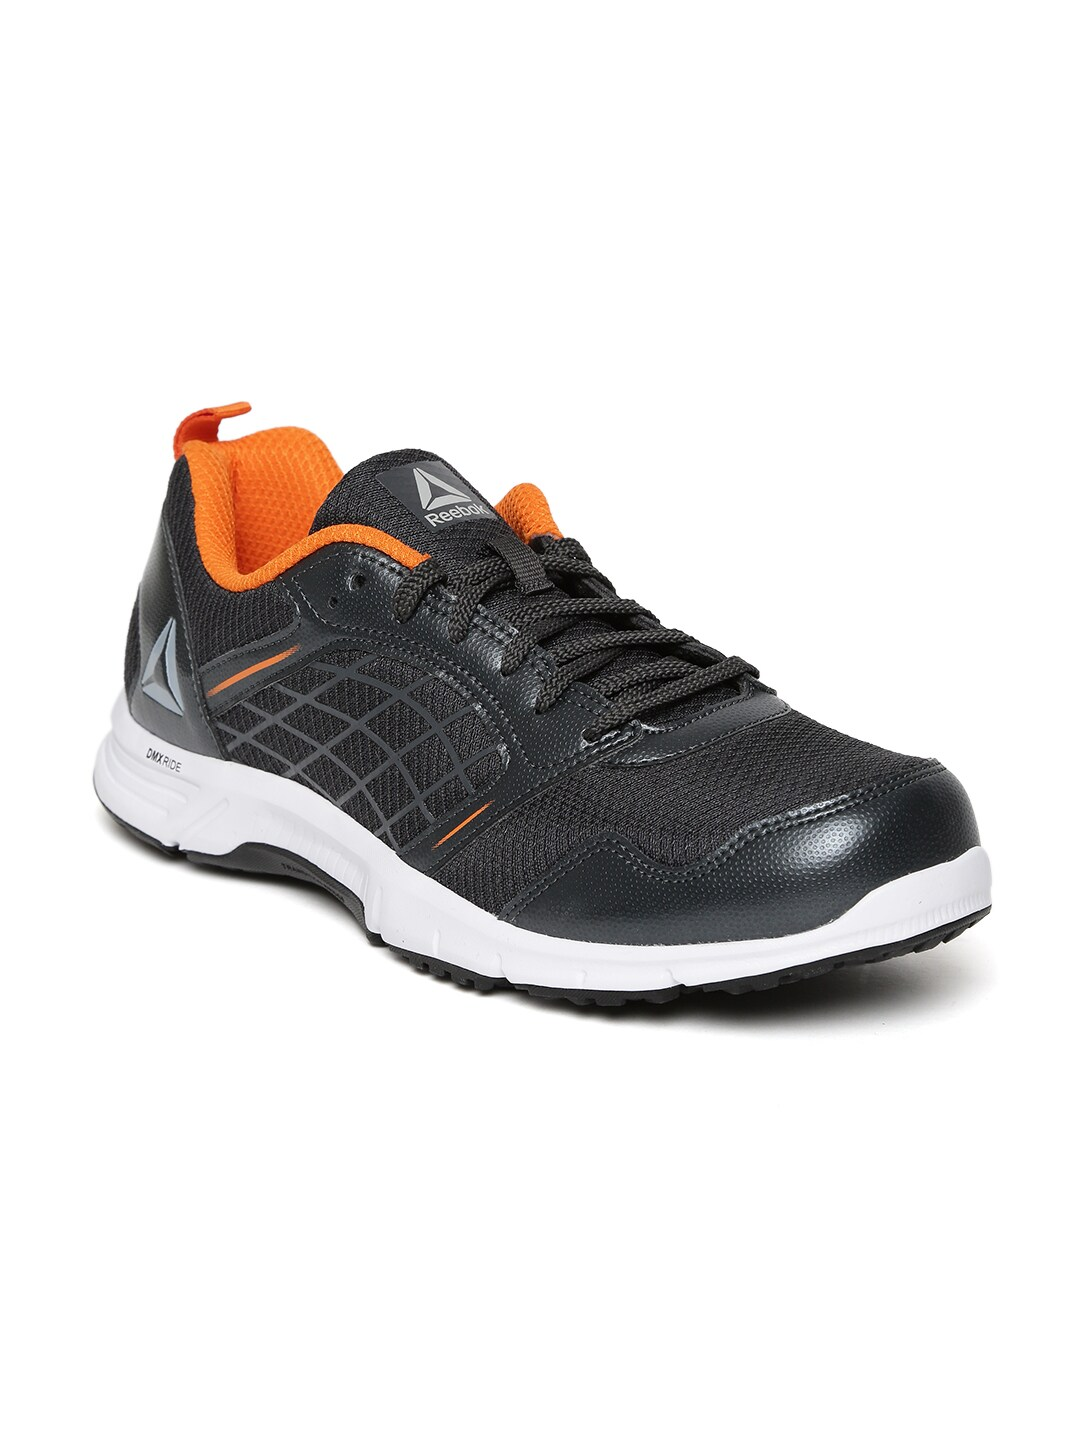 e185aa2c9622a Reebok Shoes - Buy Reebok Shoes For Men   Women Online